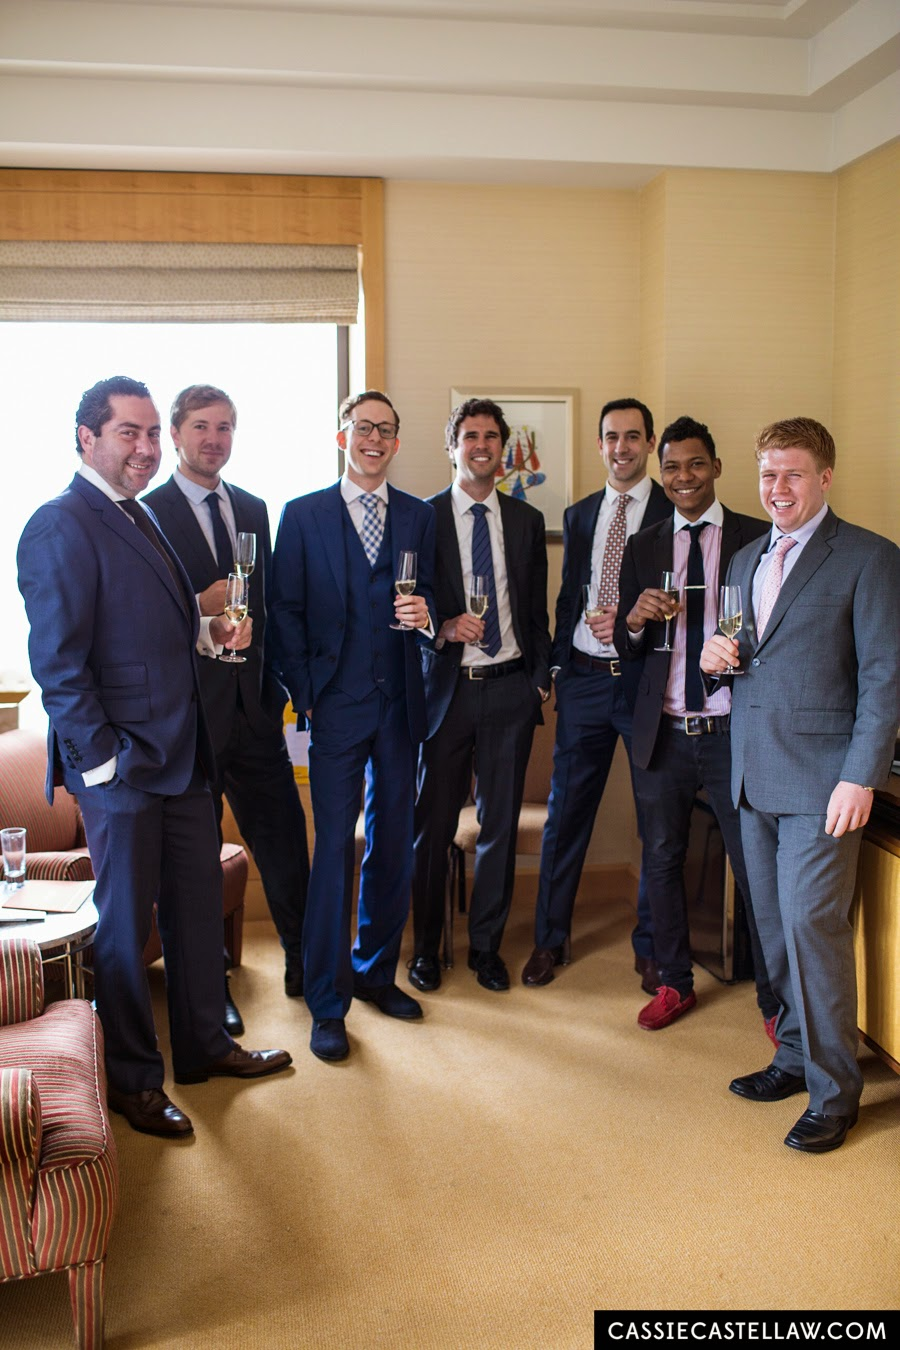 Groom and groomsmen smiling, toasting with champagne in suite at Four Seasons Hotel New York. NYC Lifestyle wedding photography by Cassie Castellaw. www.cassiecastellaw.com